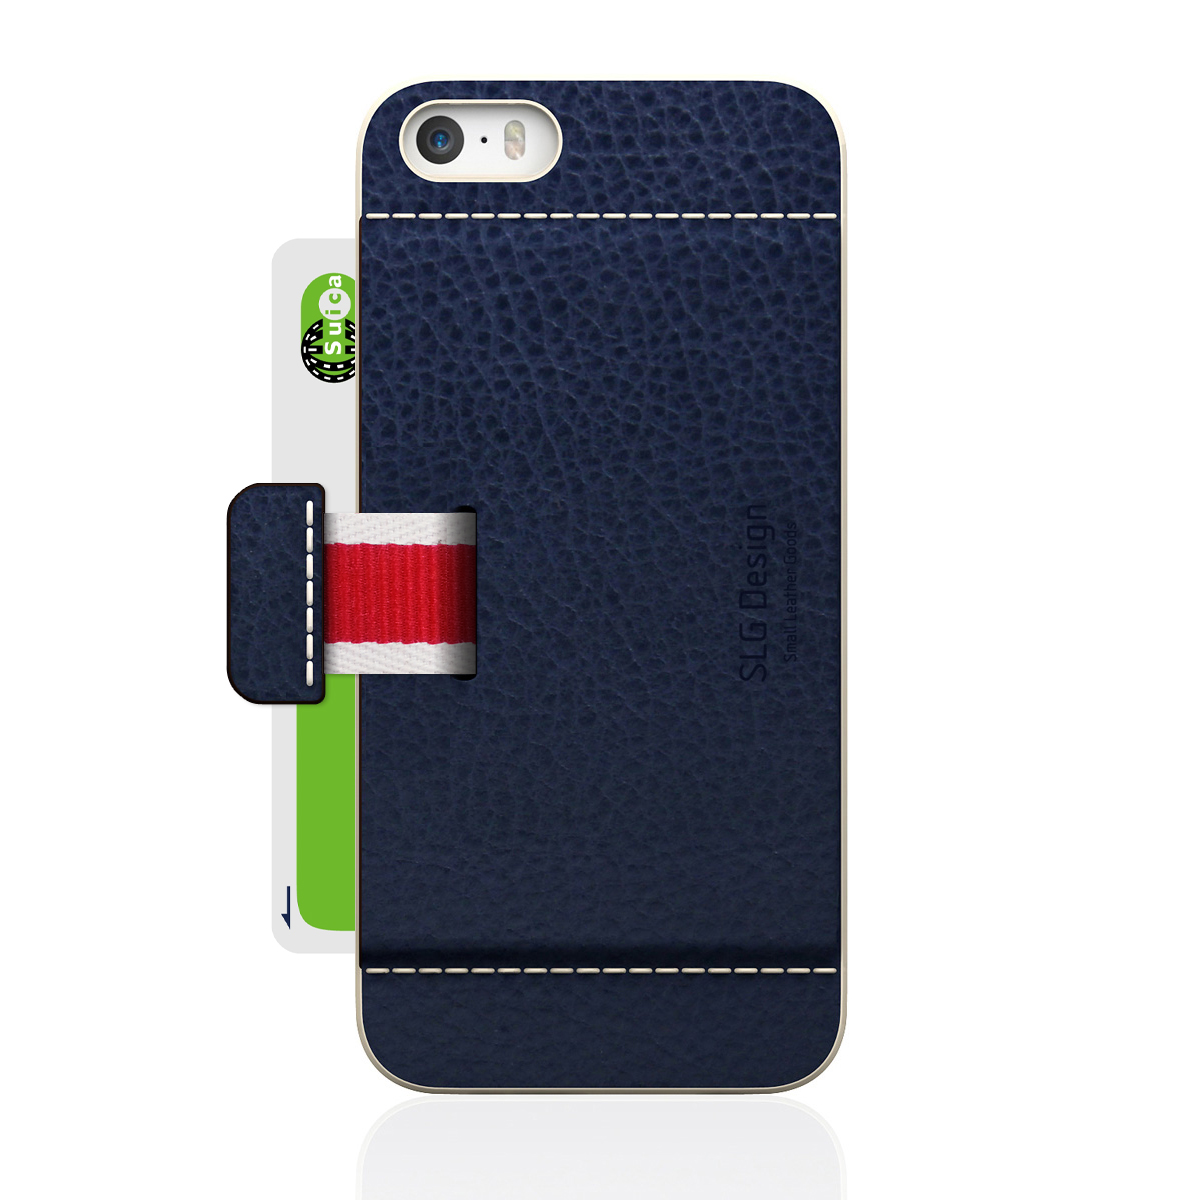 [iPhone5/5s] D6 Italian Minerva Box Leather Card Pocket Bar ネイビー